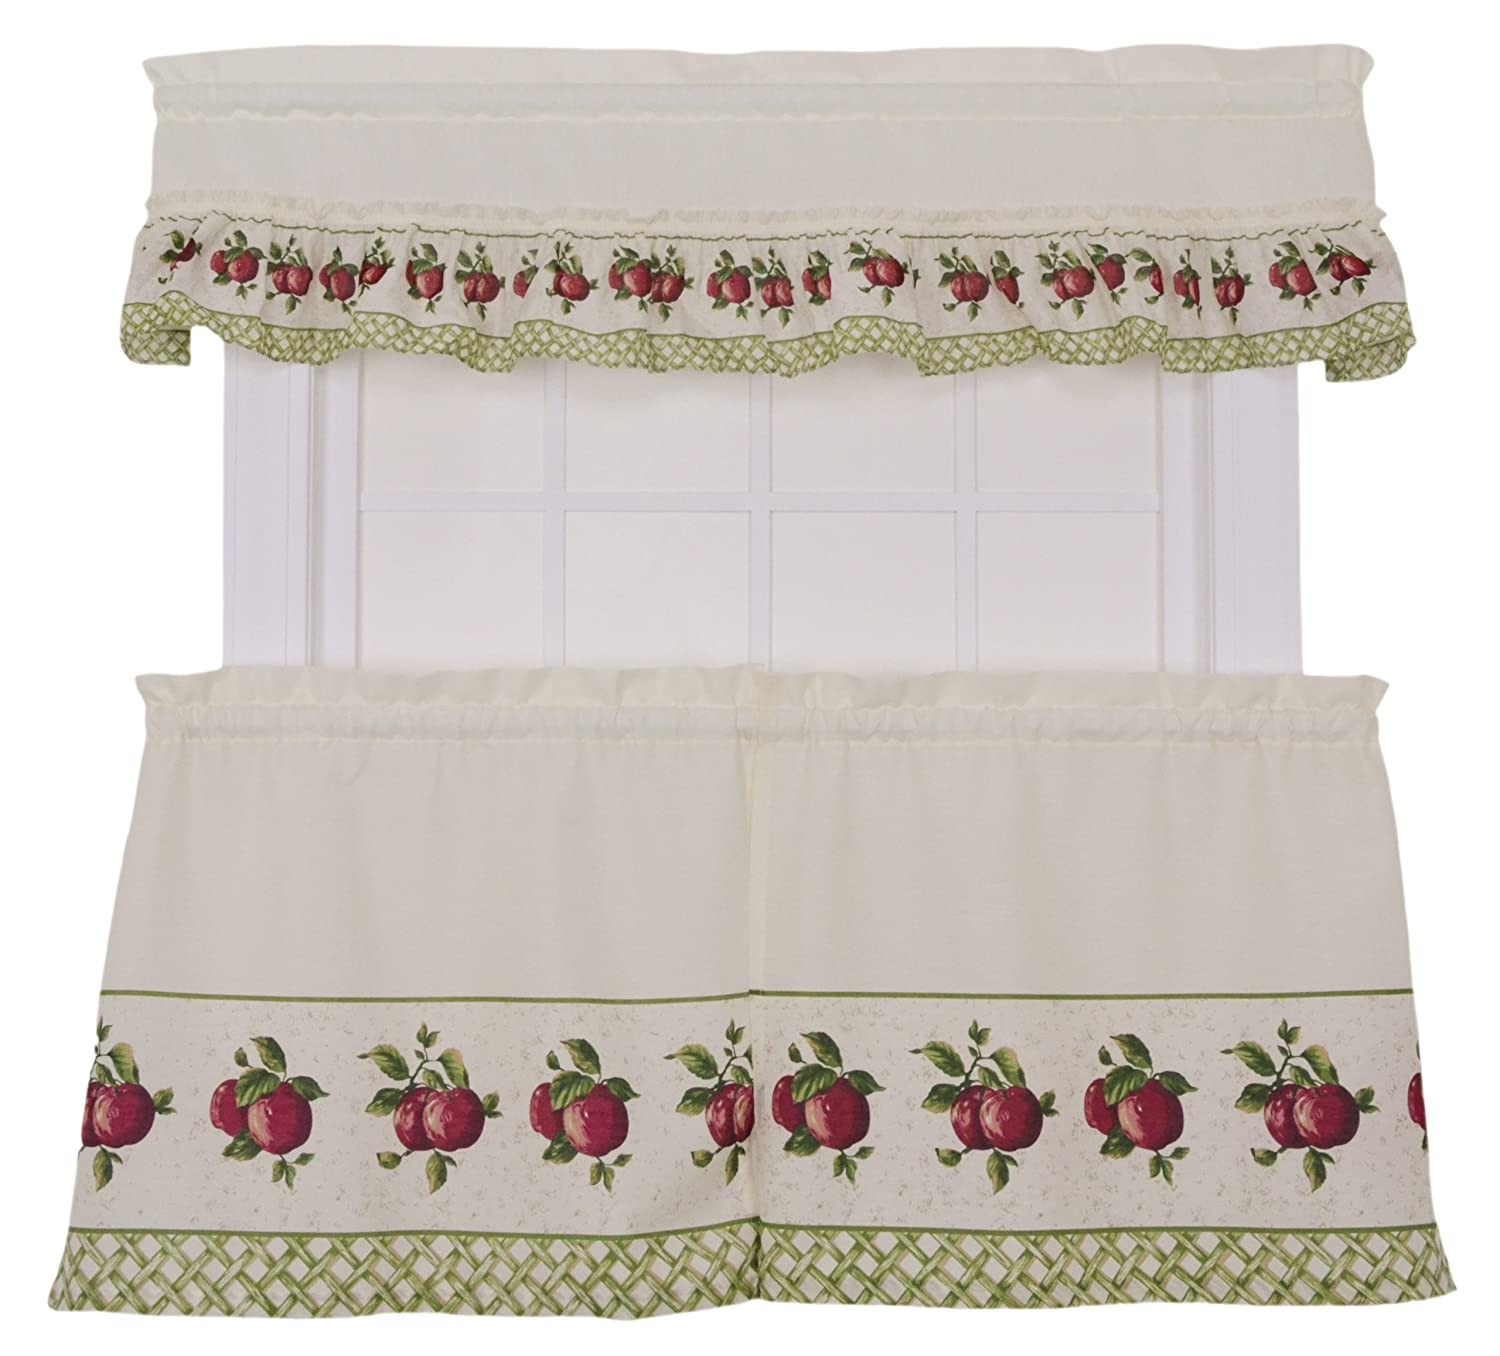 Miraculous Ellis Curtain Kitchen Collection Apple Trellis 60 By 36 Inch Tailored Tier Curtains Red Download Free Architecture Designs Scobabritishbridgeorg